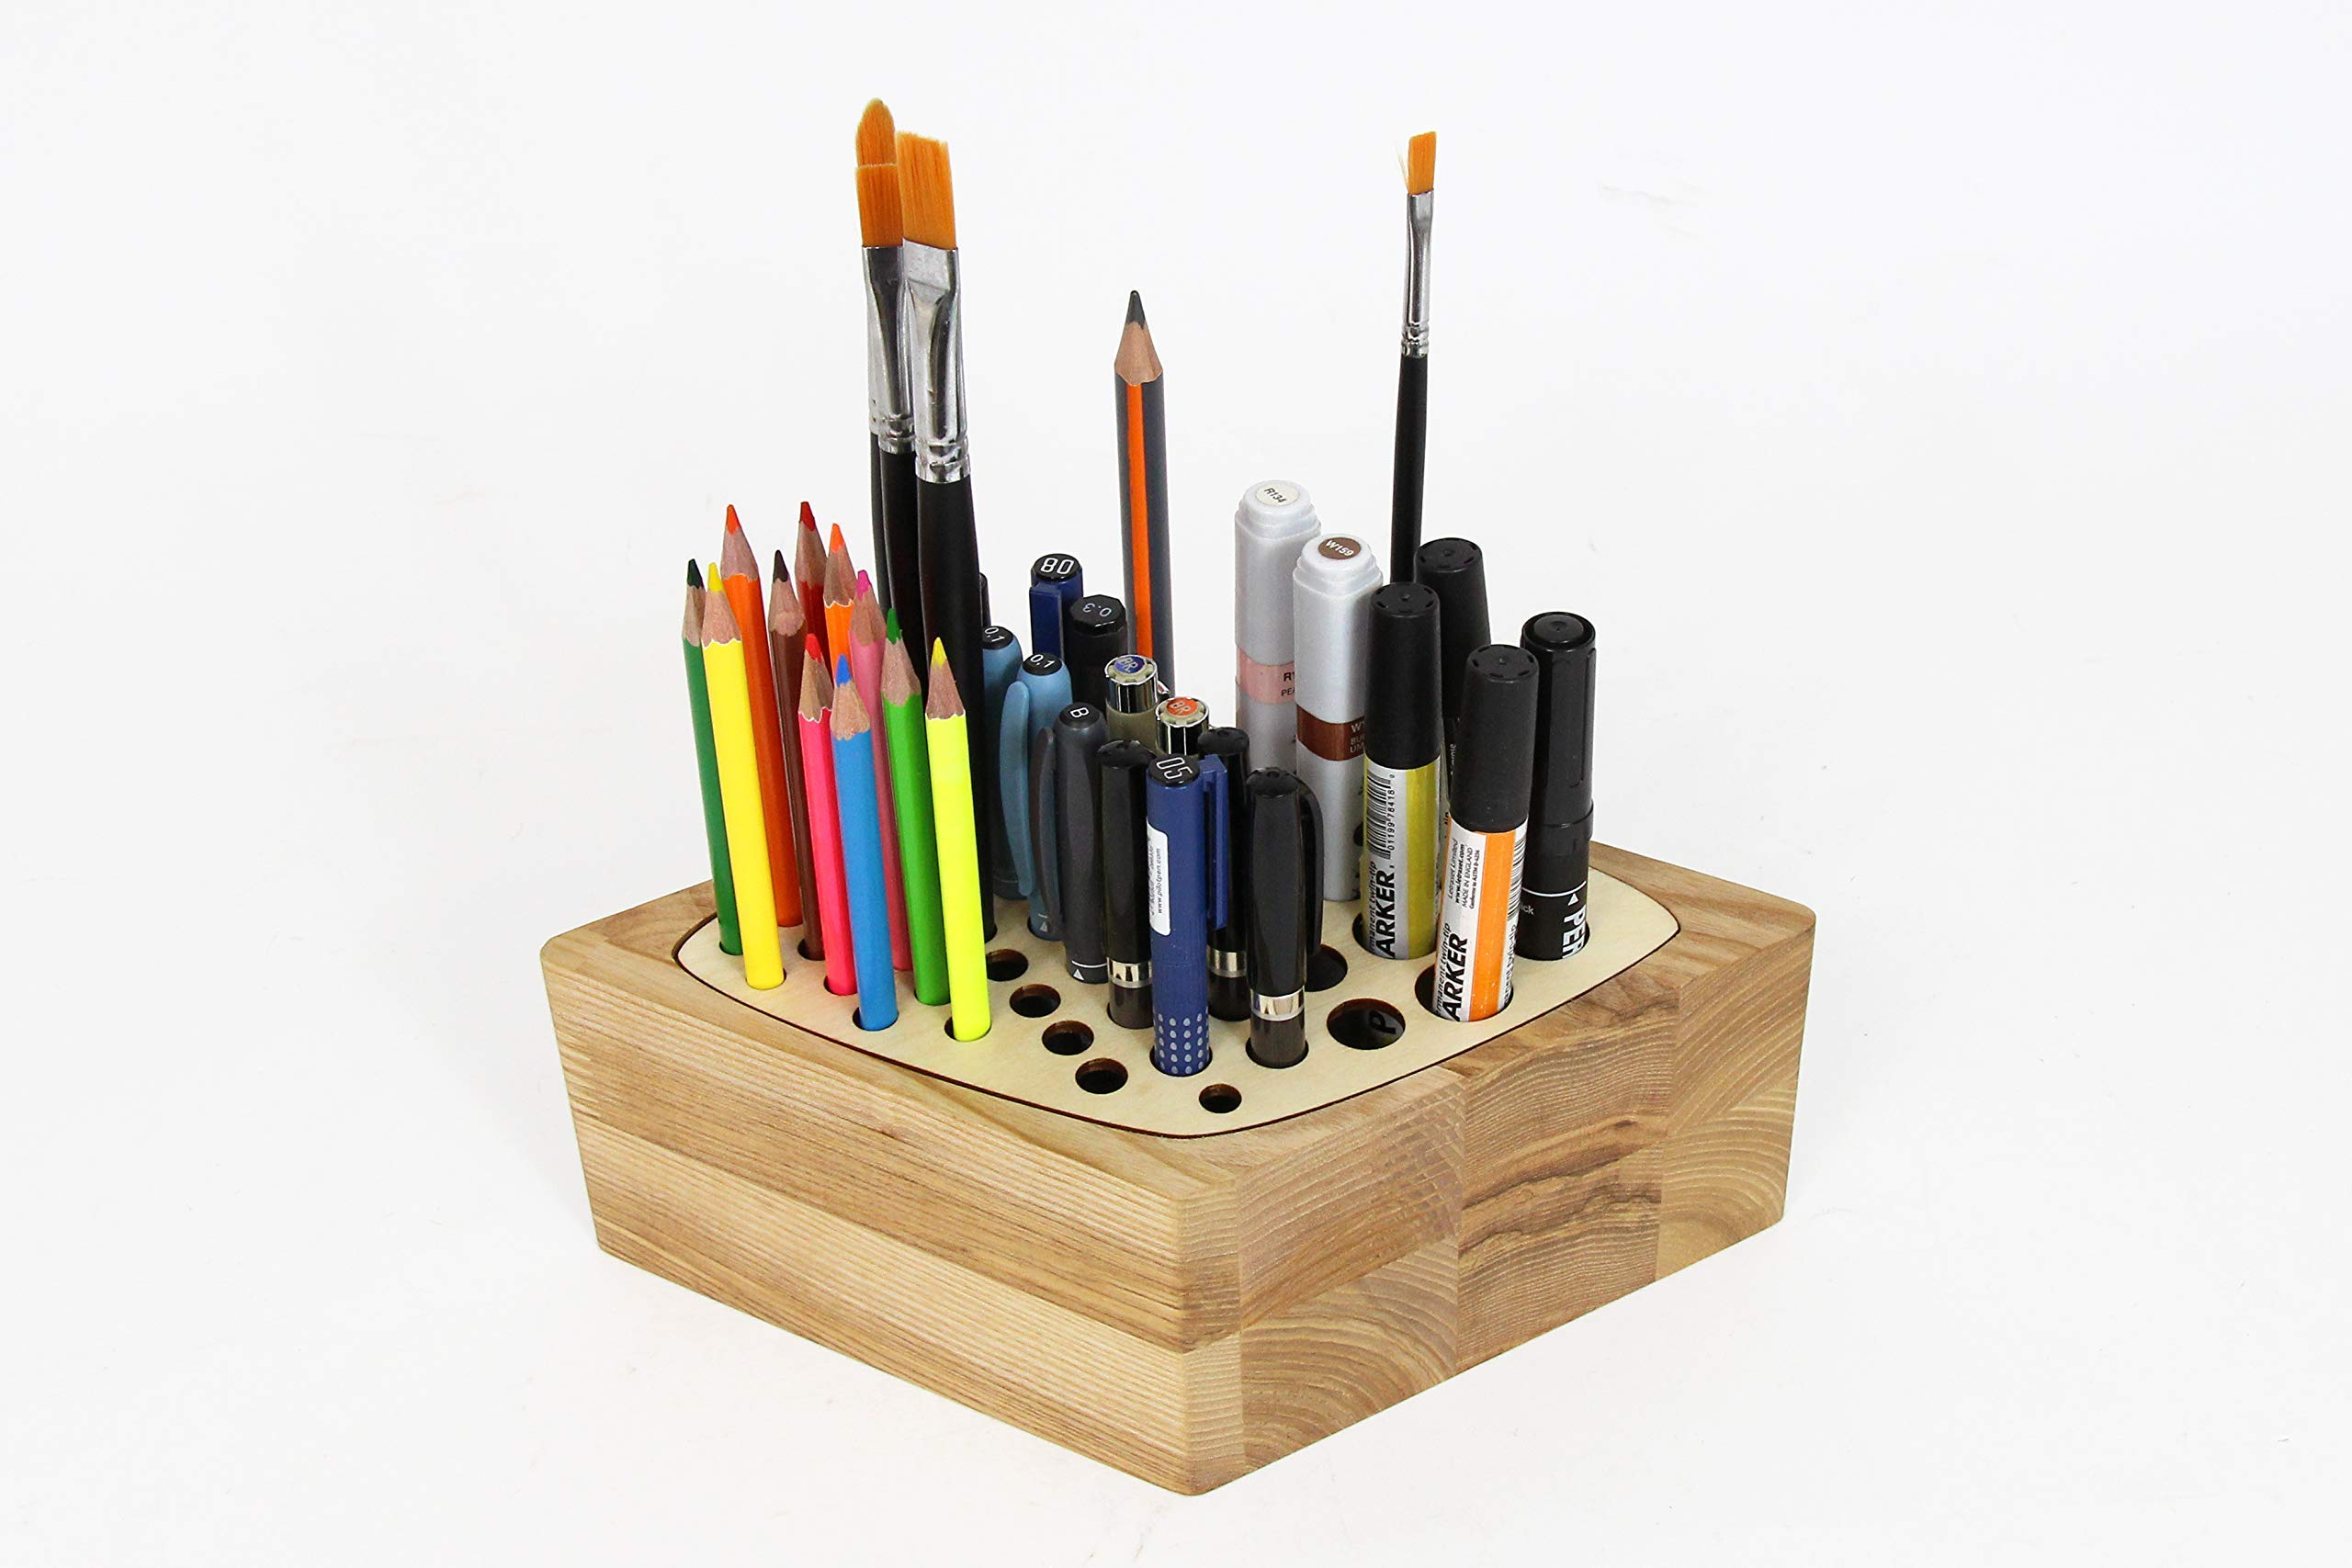 Handmade Wooden Pencil Holder 8.7 x 5.3 x 3.2 inches